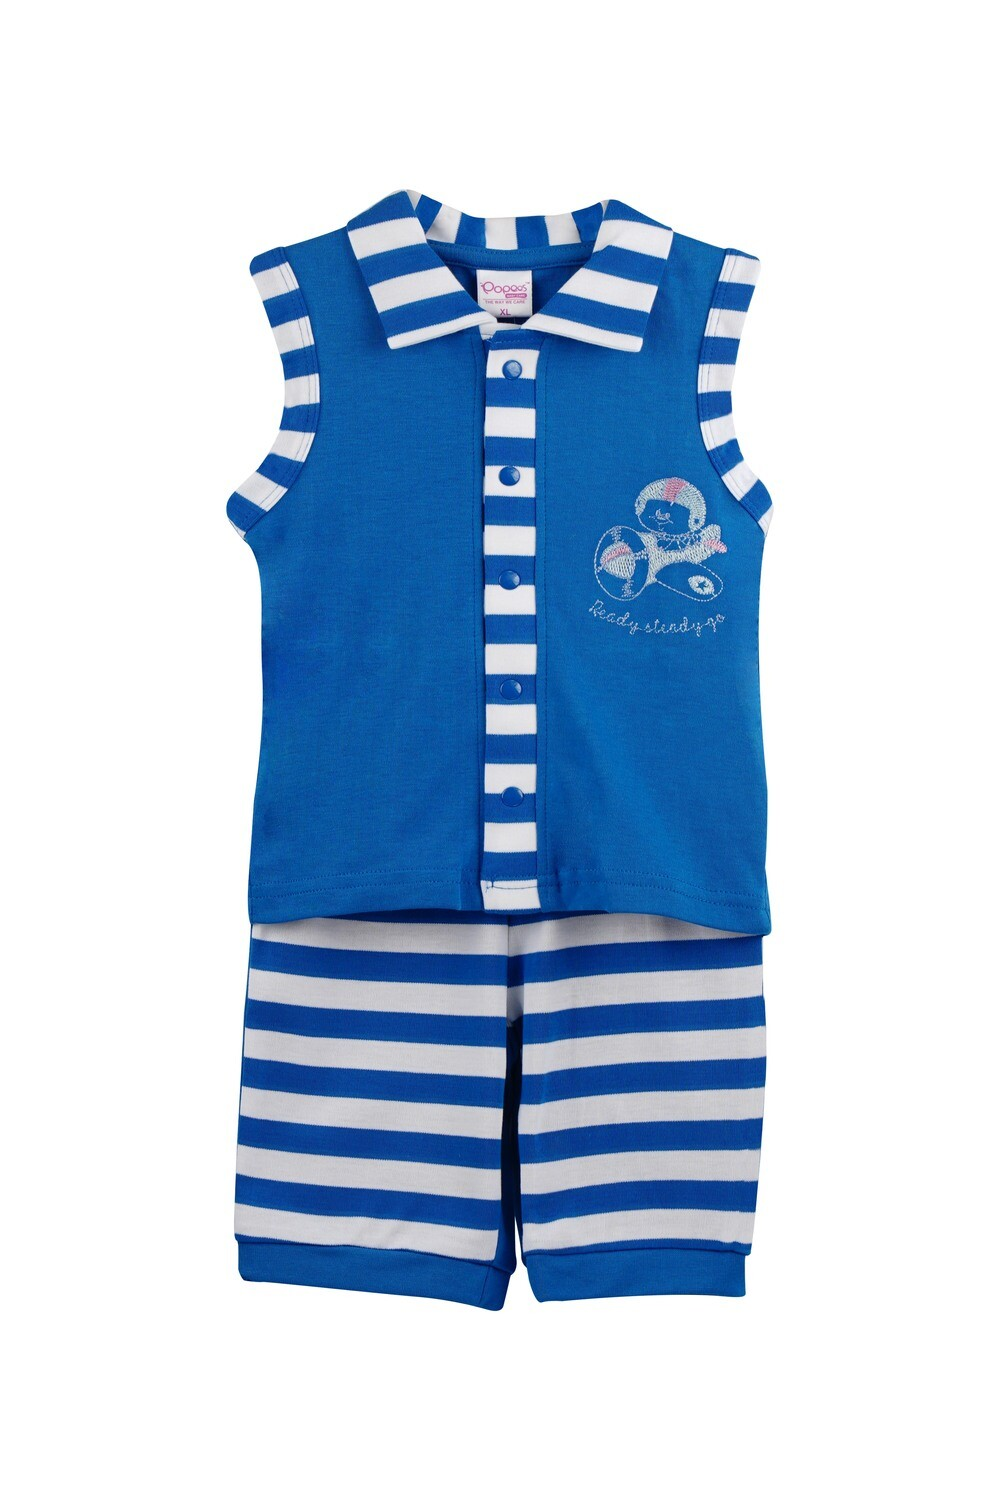 Popees Chitwan Blue Color for Baby Boys (XL: 18-24 Months)